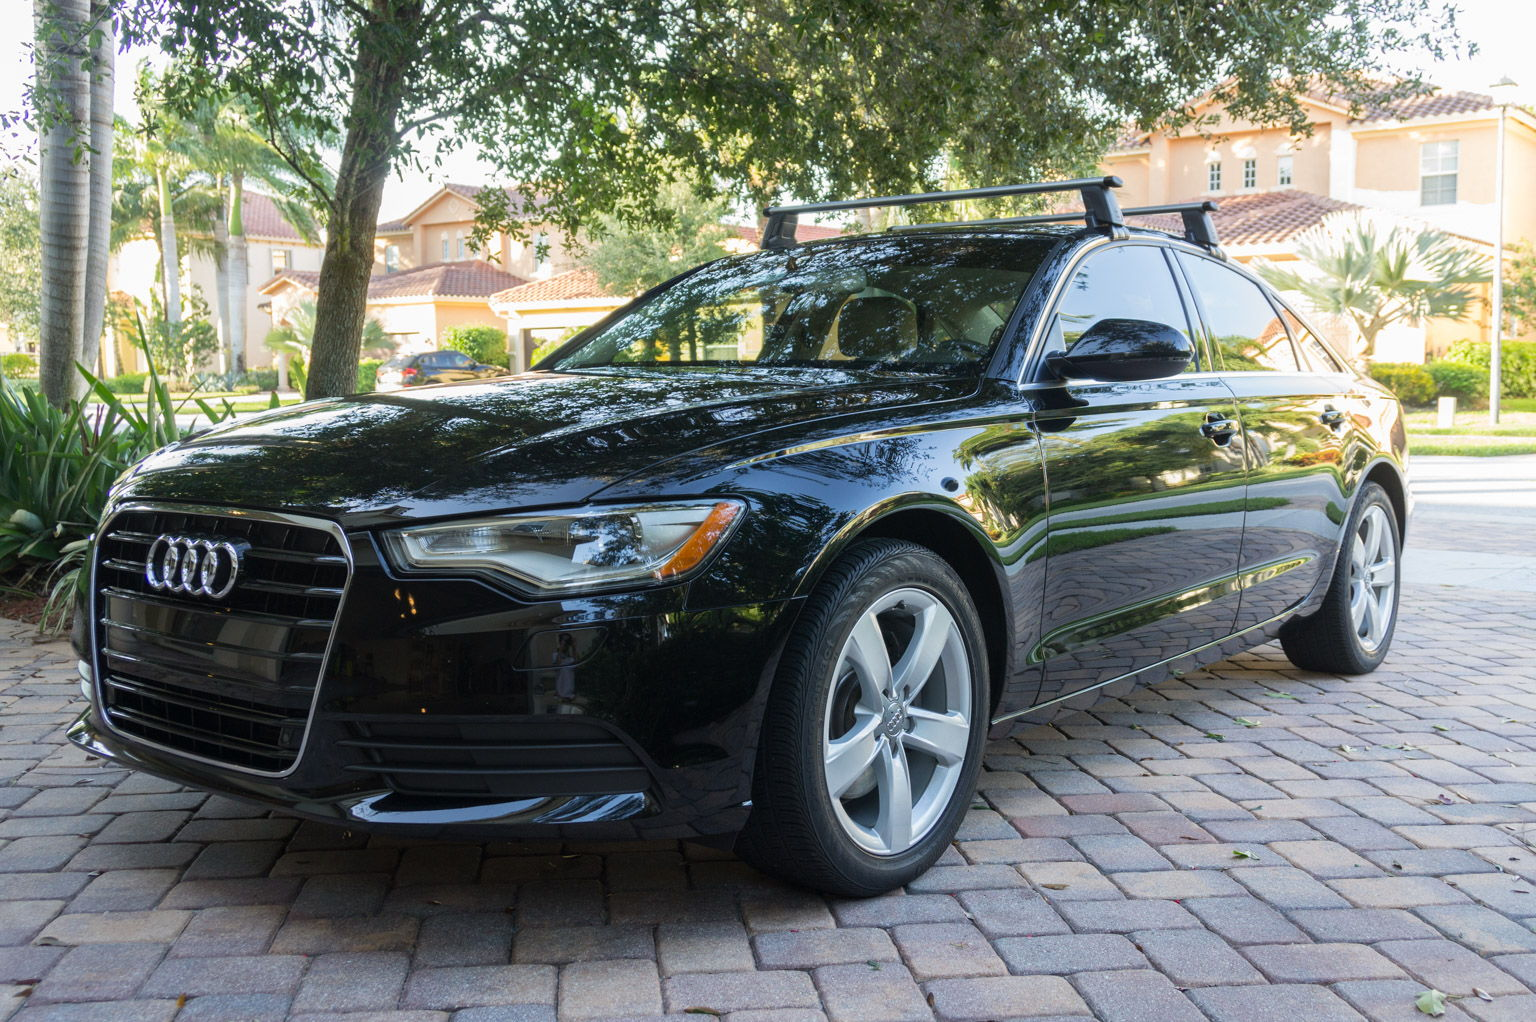 I Also Got The OEM Audi Roof Rack. They Fit Into The Holes Under The Roof  Rails In The Door Jambs And Are Very Easy To Install.